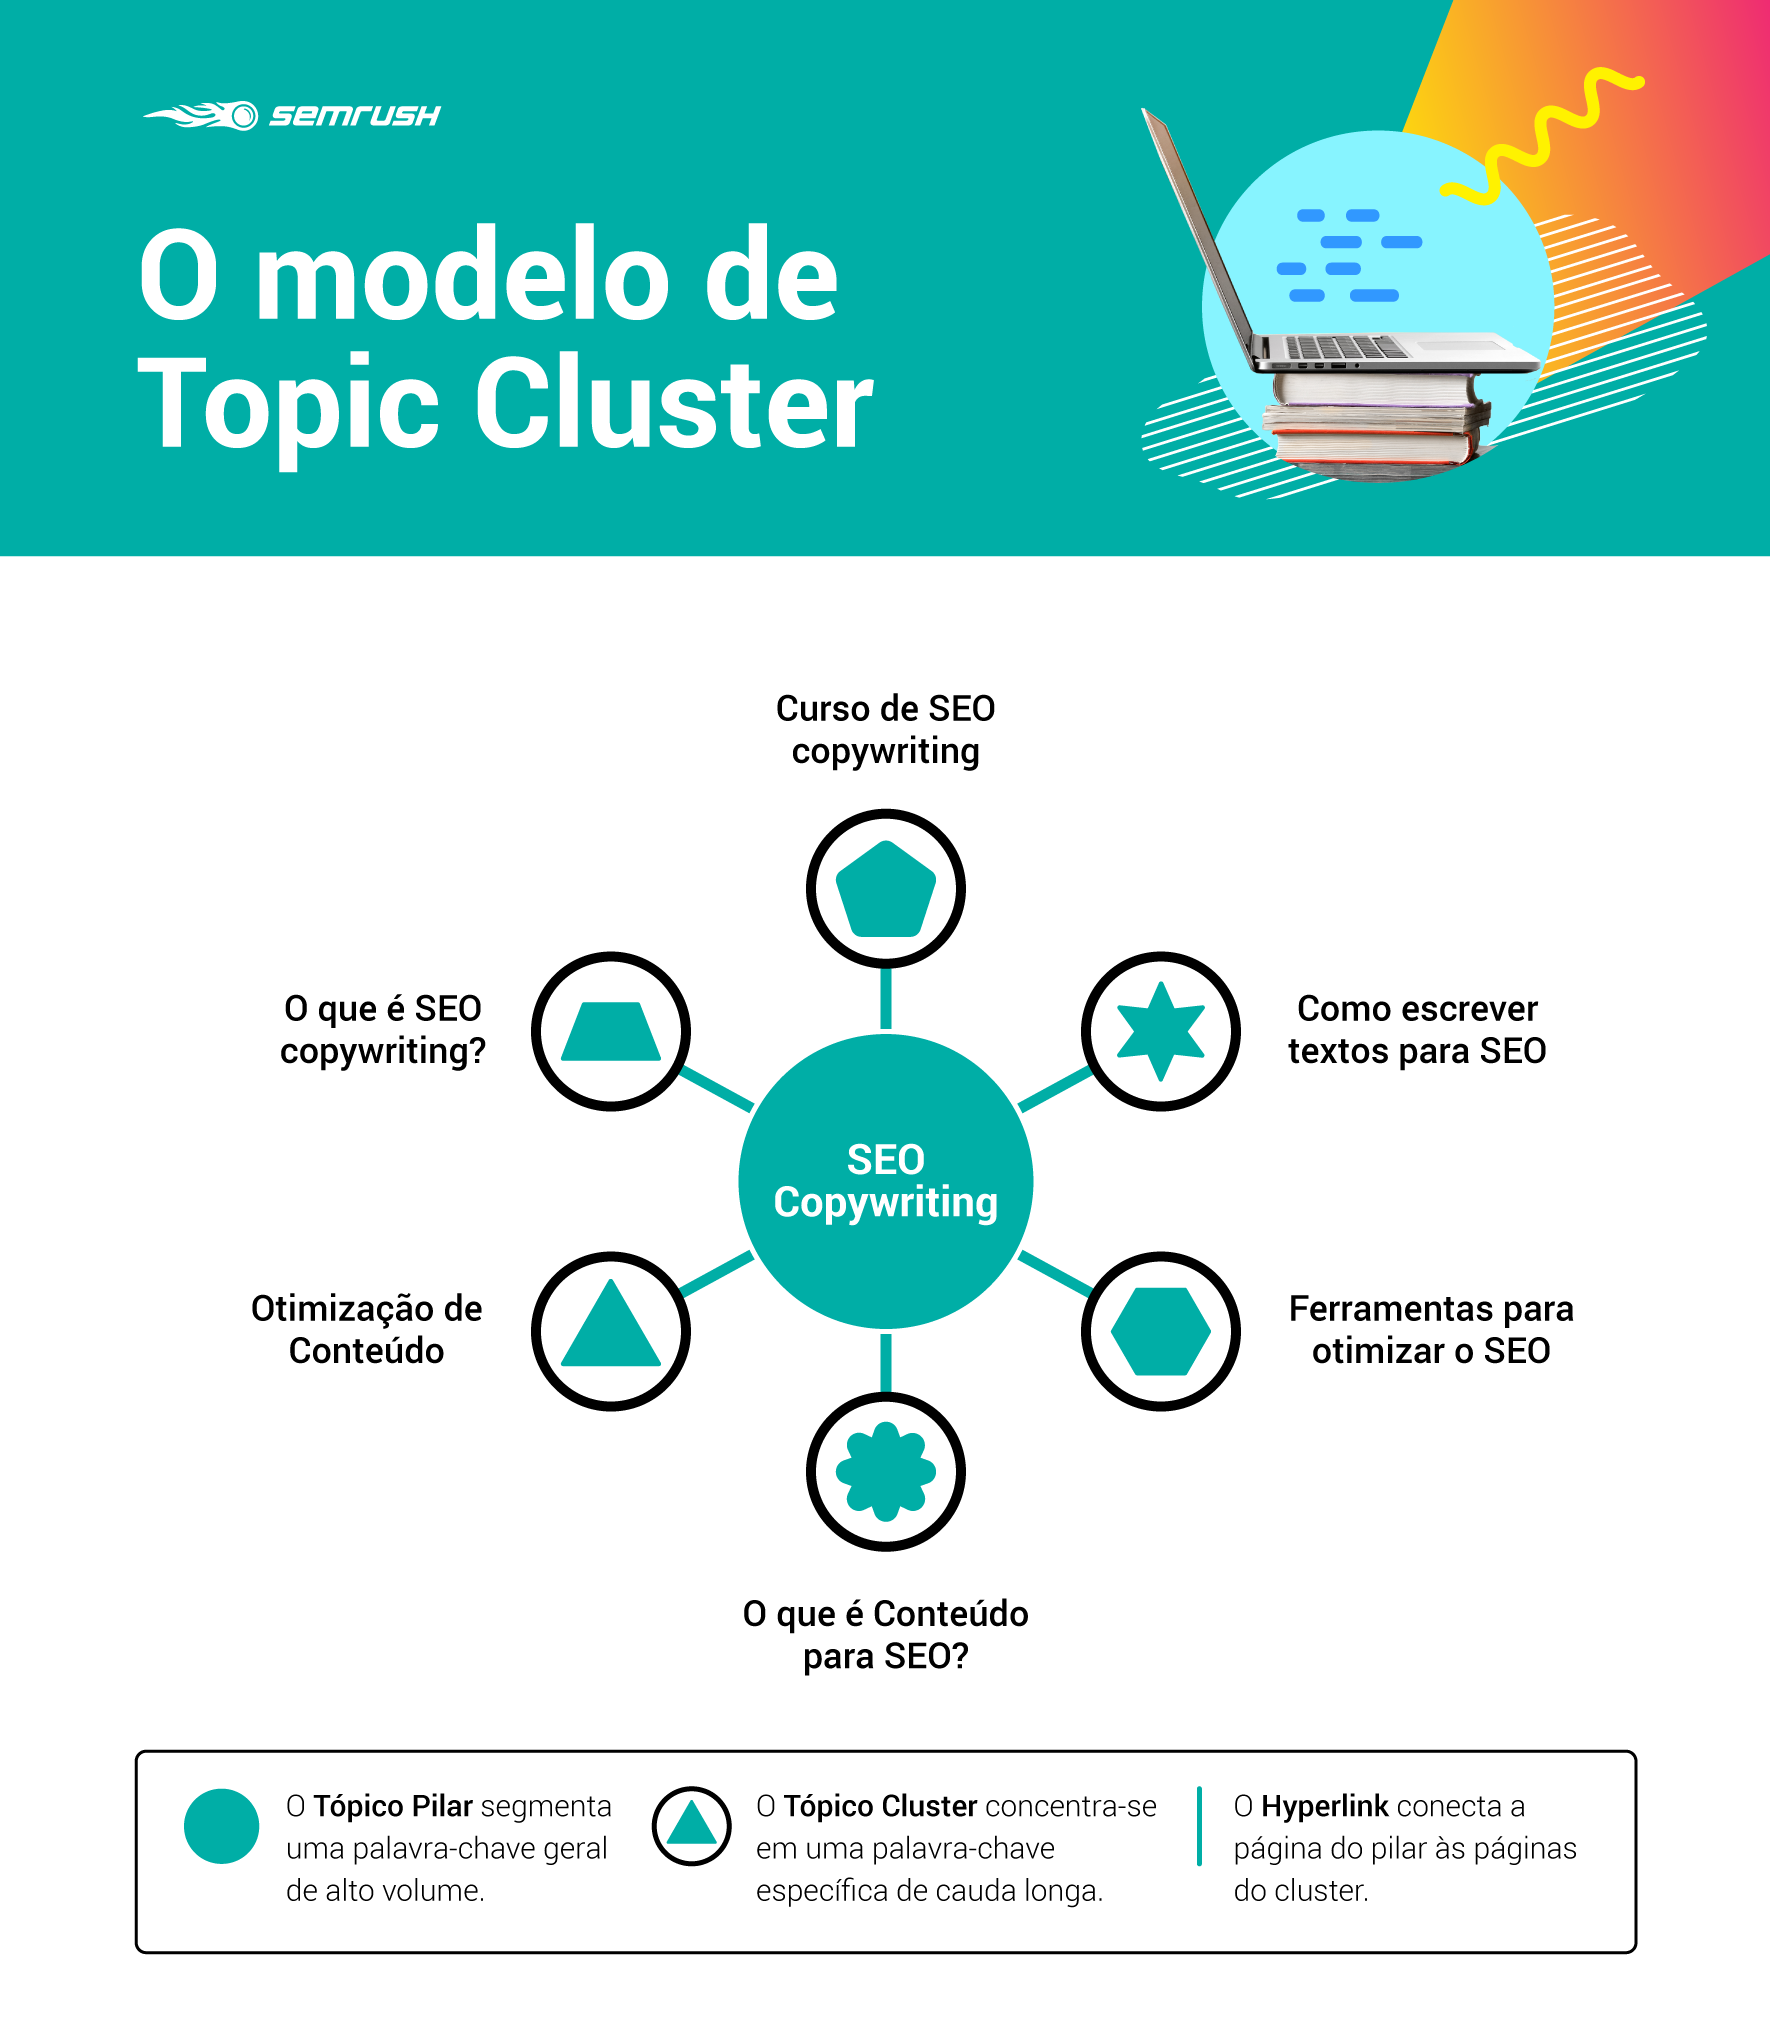 The Topic Cluster Model according to HubSpot